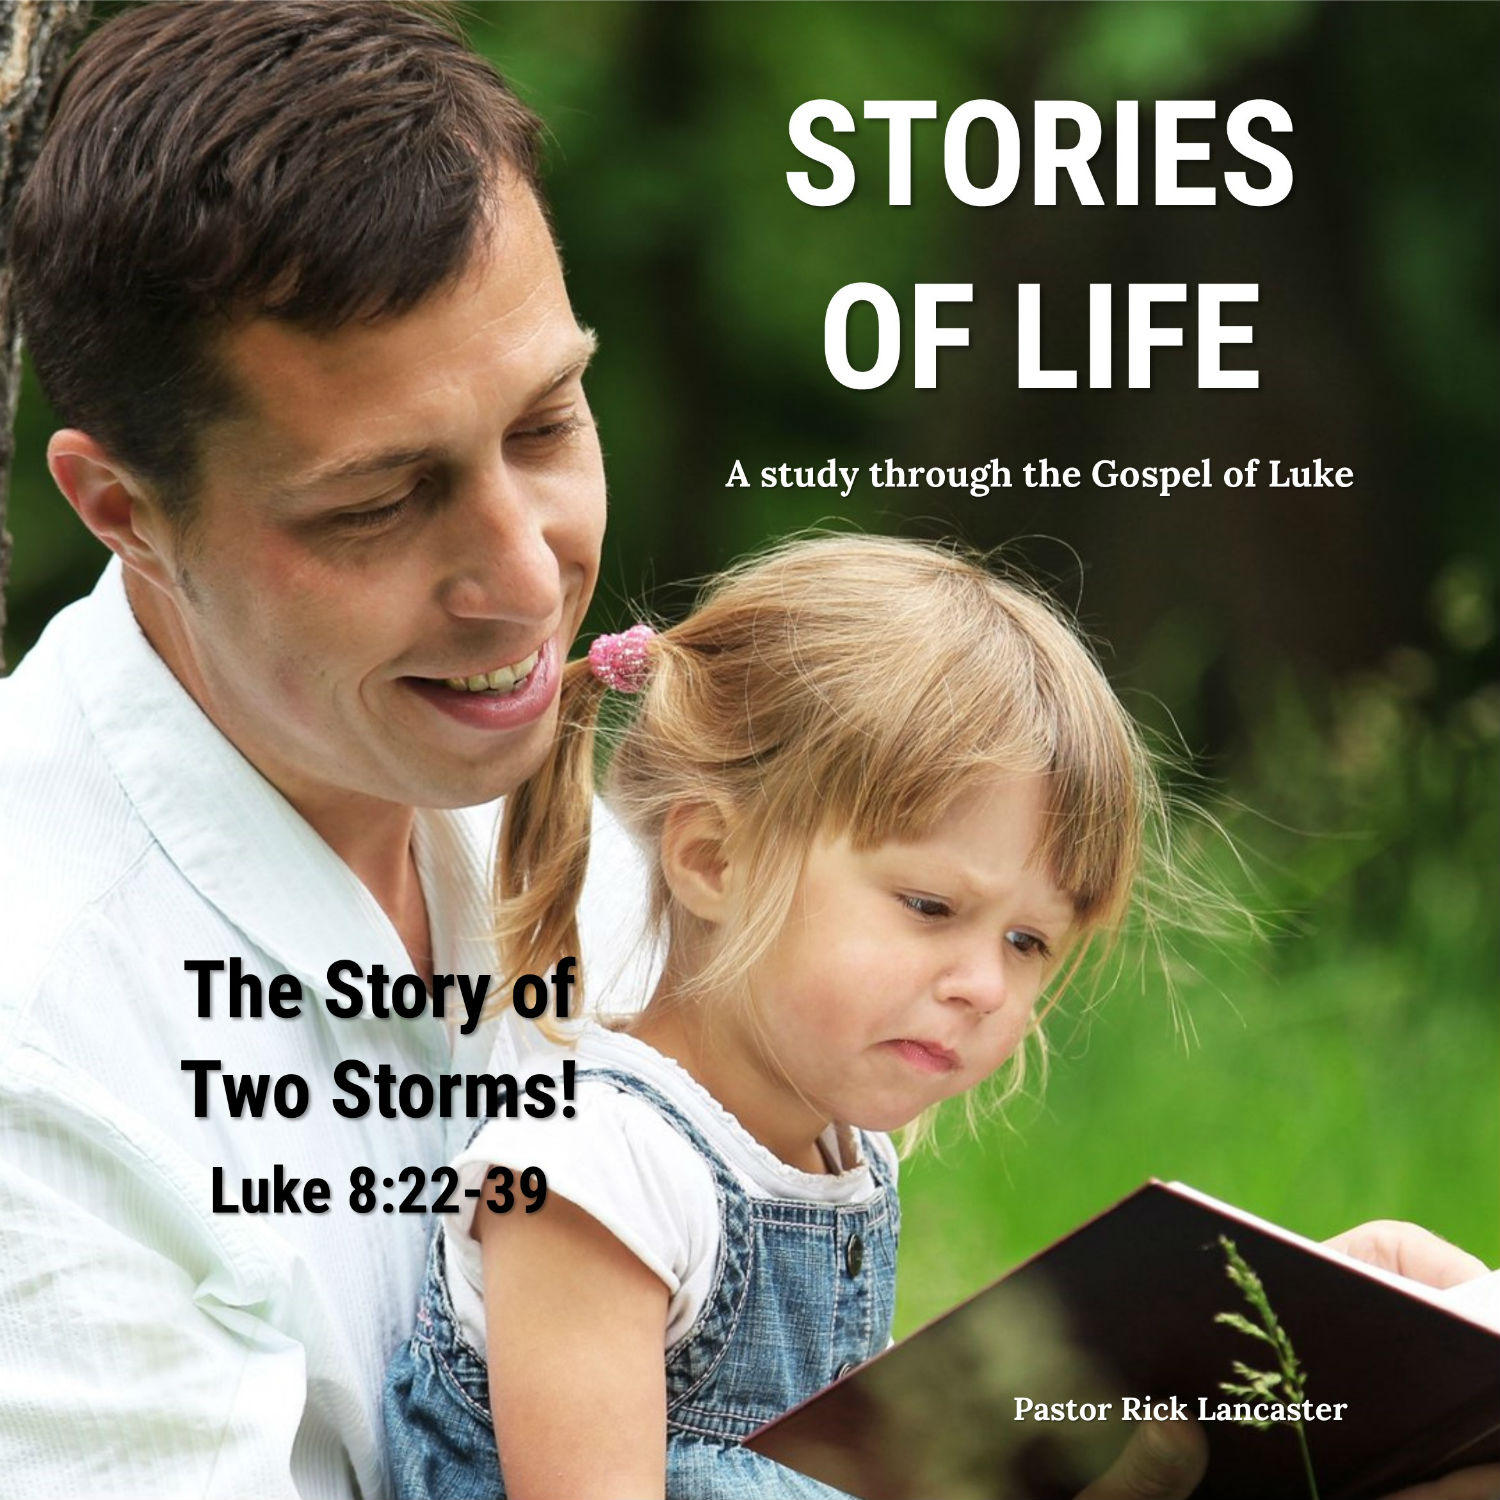 The Story of Two Storms! – Luke 8:22-39 Image